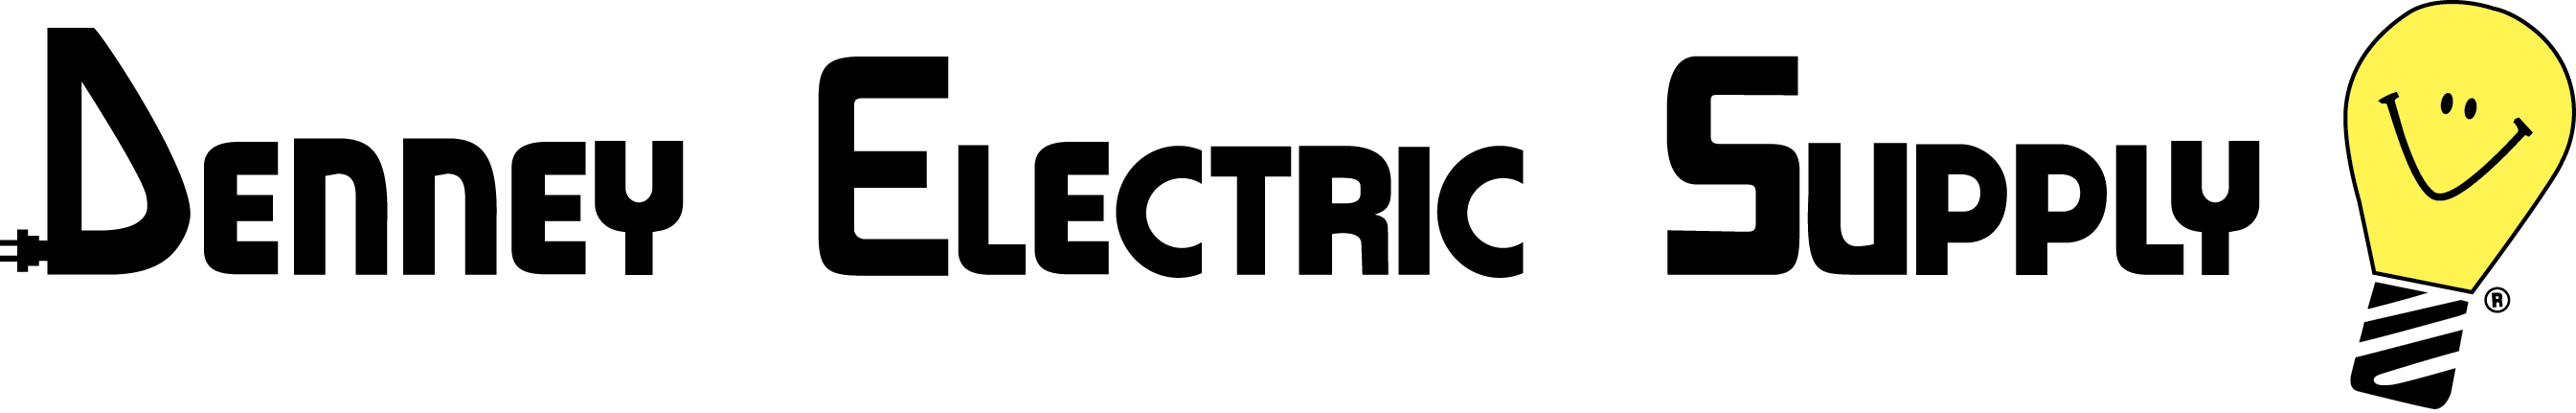 Denney Electric Supply logo